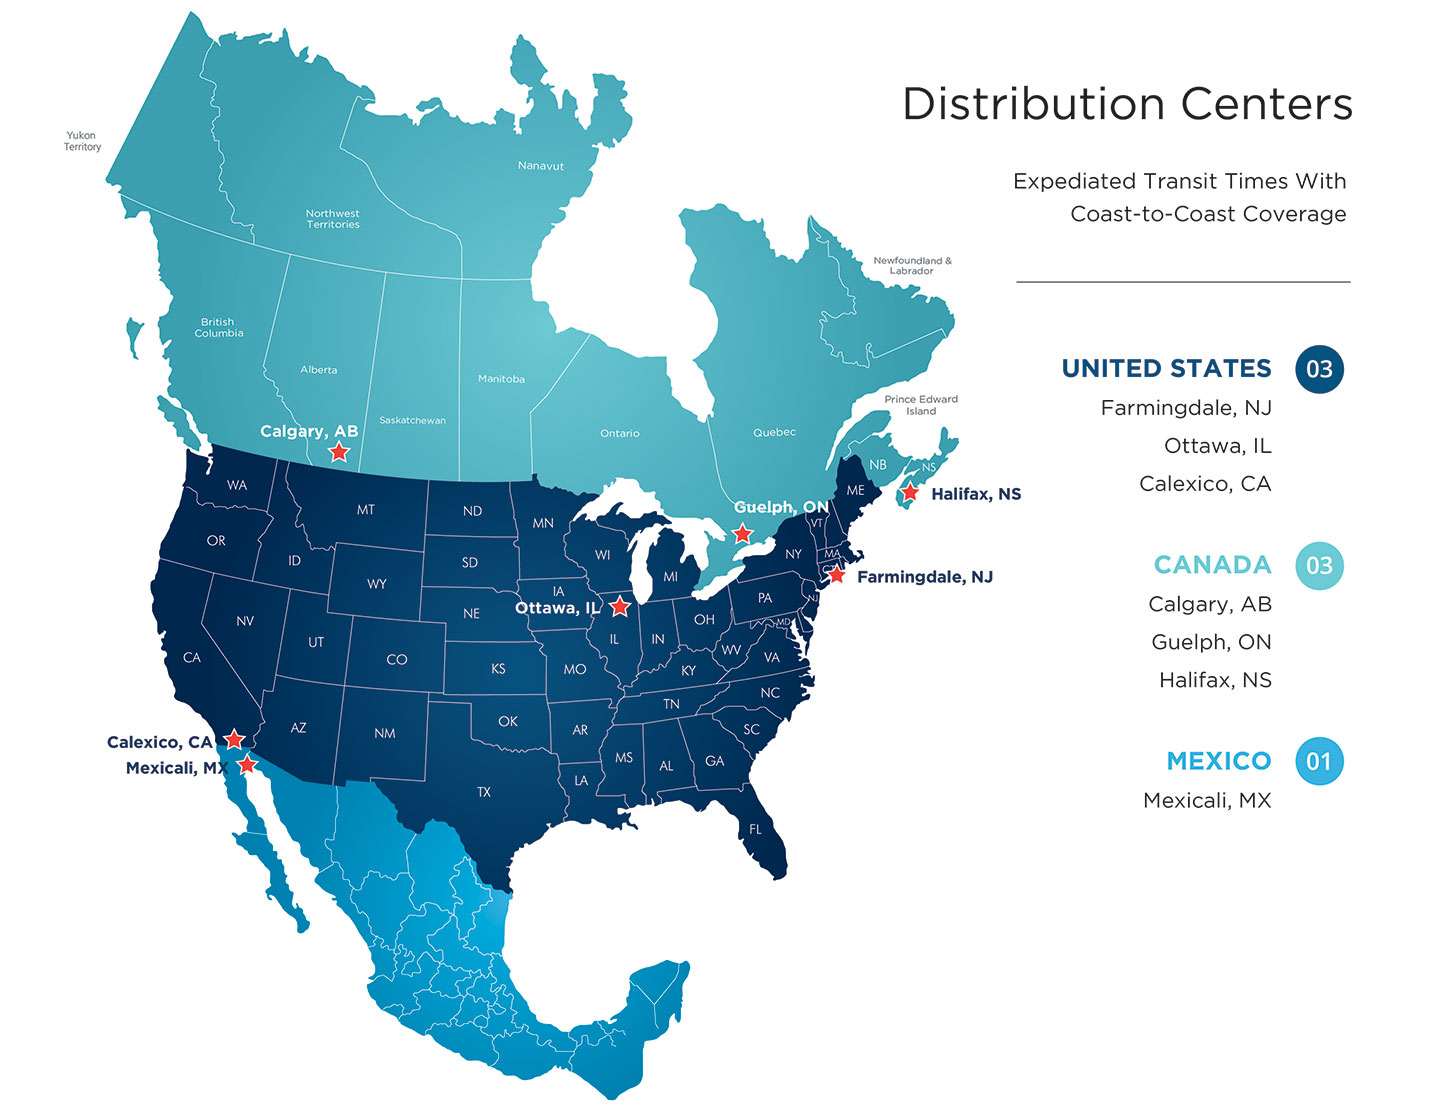 CLOVER DISTRIBUTION CENTERS - USA 1Regional warehouses for competitive ground service